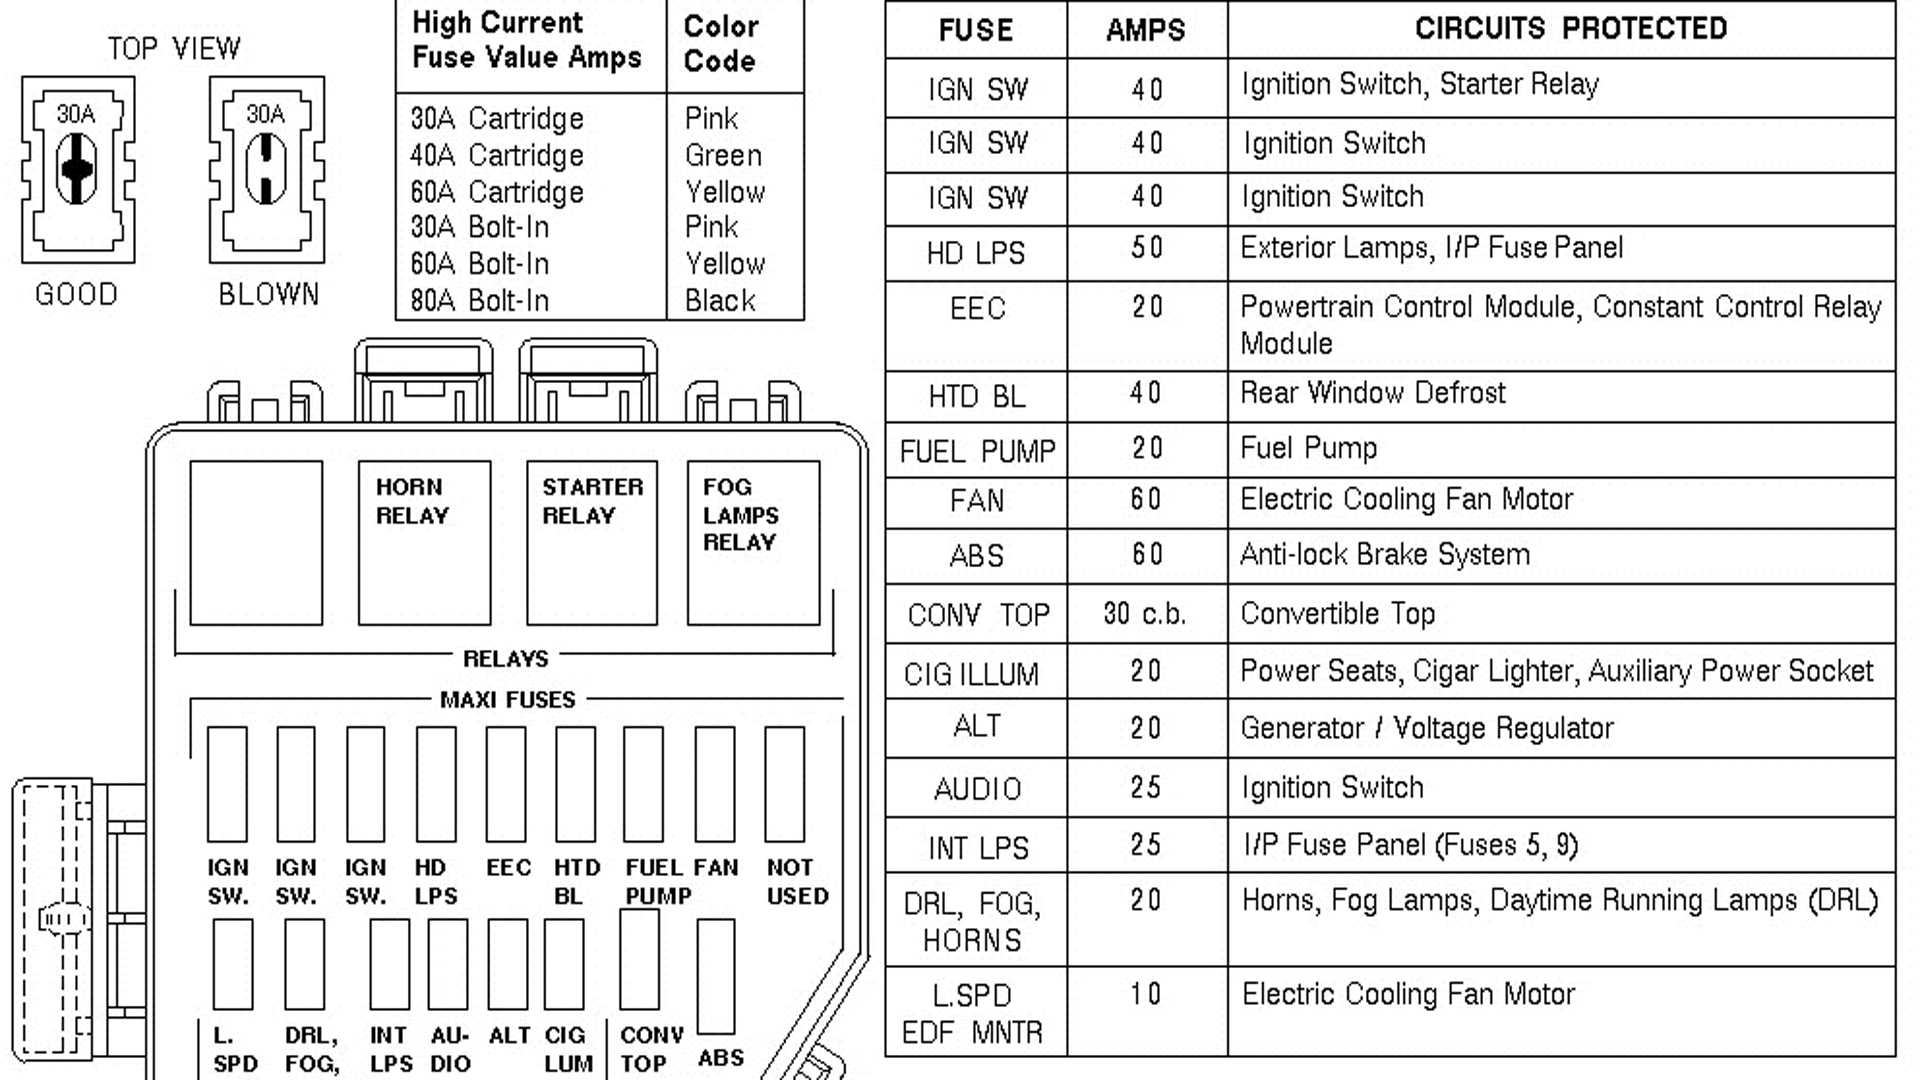 Ford Mustang V6 And Mustang Gt Fuse Box Diagram